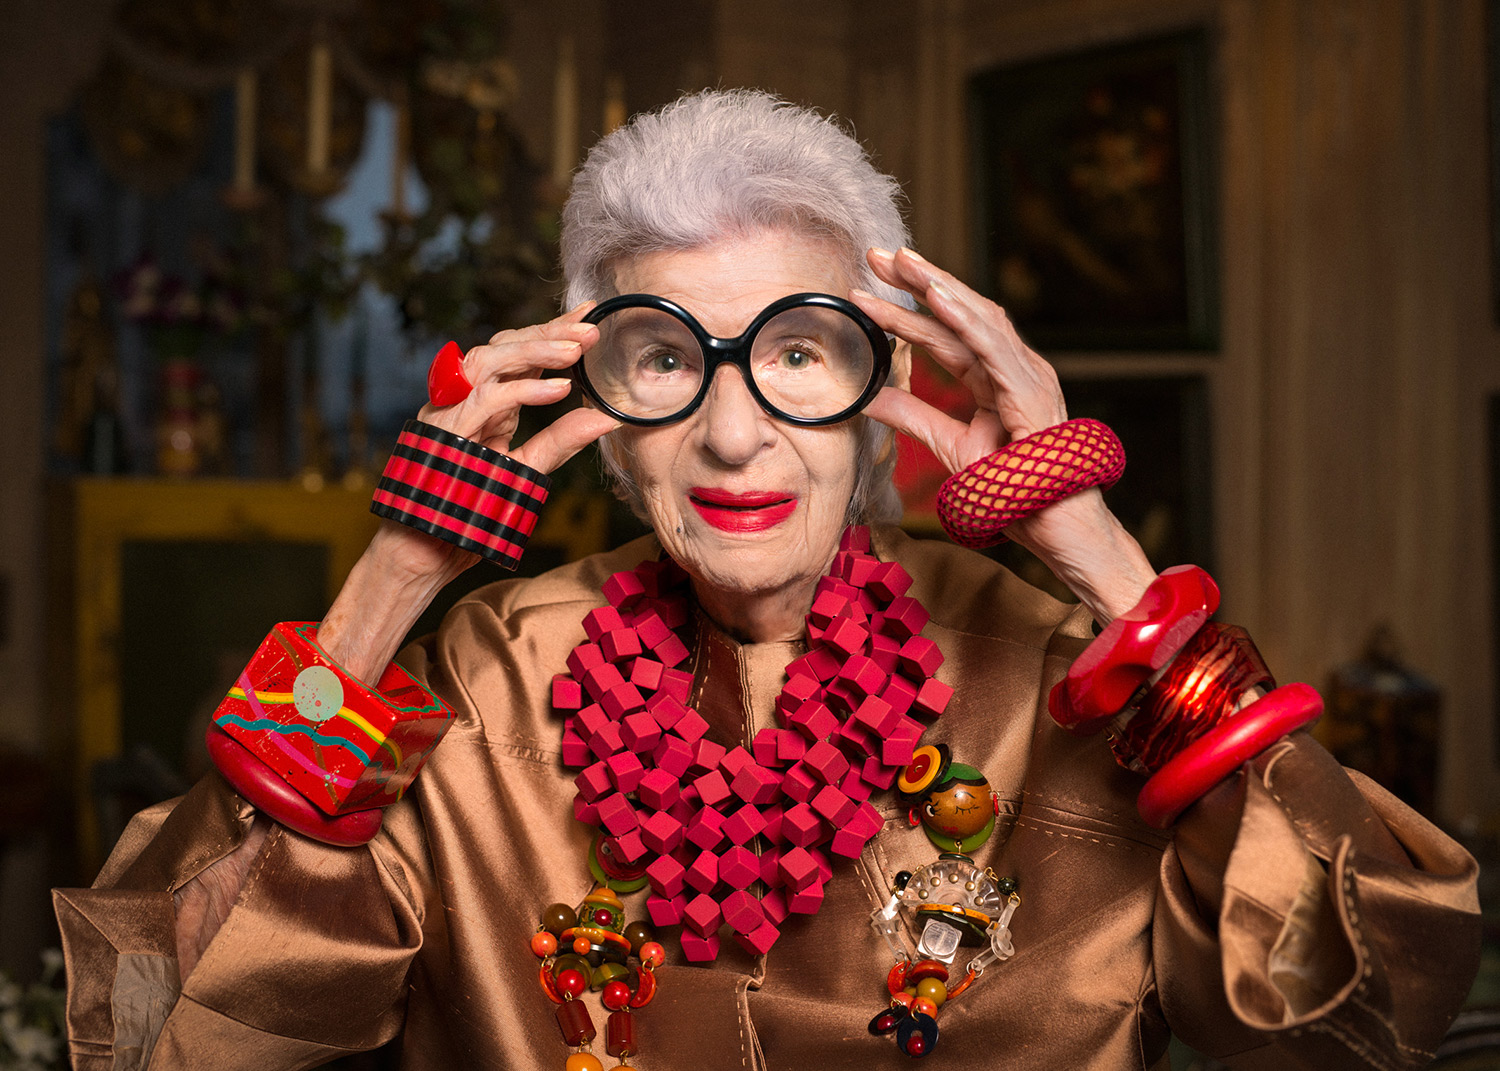 Iris Apfel shows us how 97 can look in all its glory. I wonder what lipstick she's wearing. Or 2 or 3.